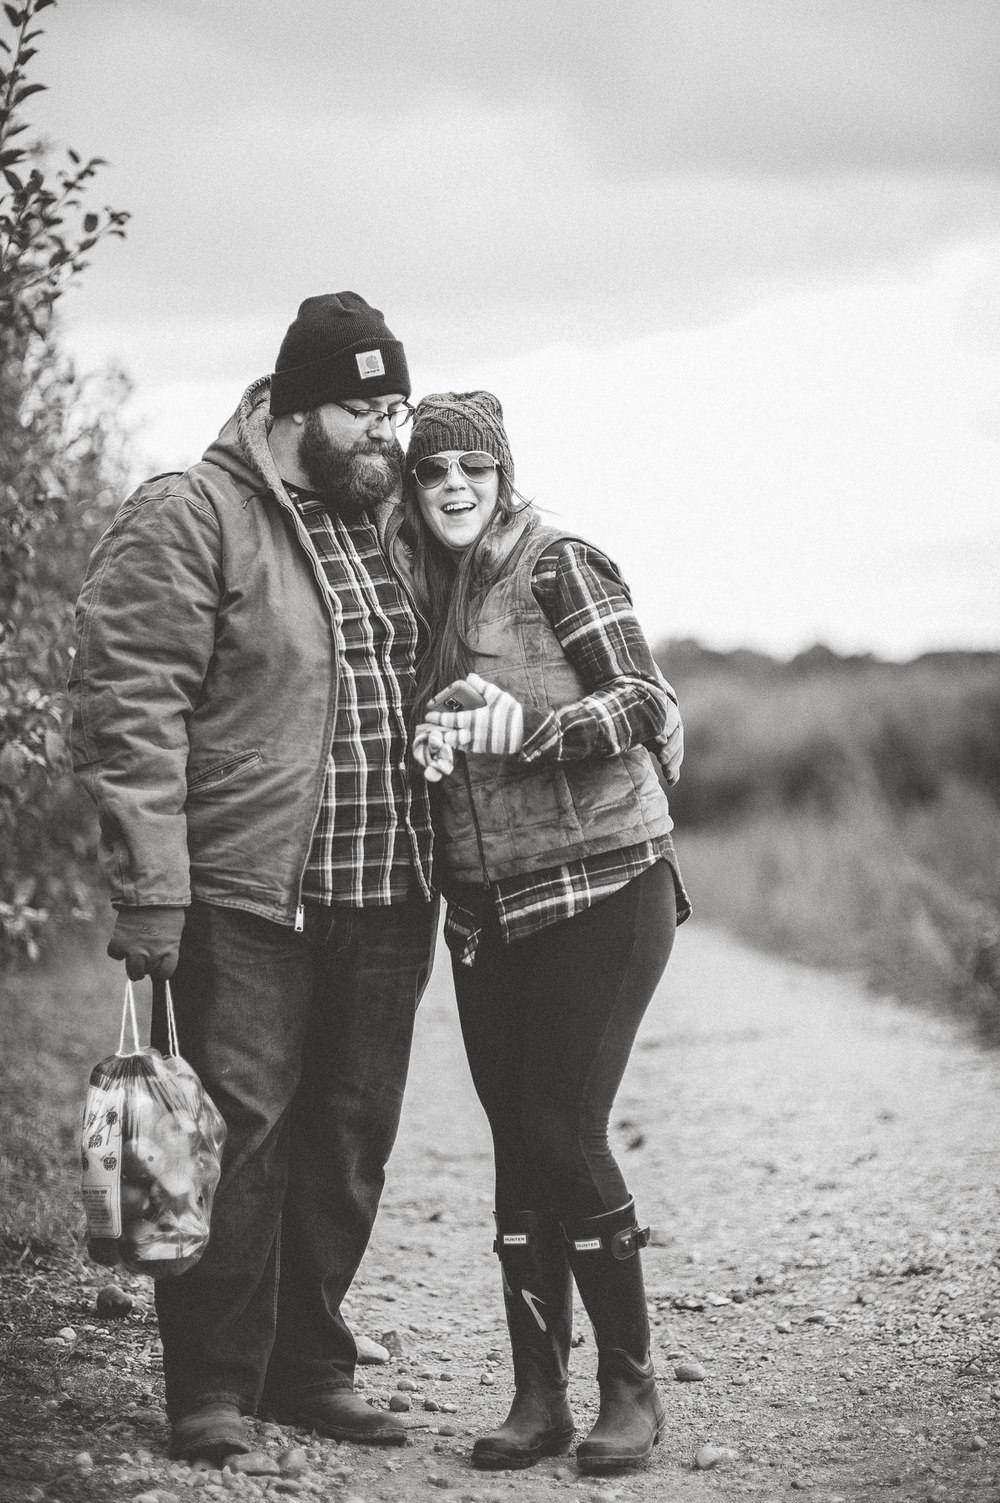 breighton-and-basette-photography-copyrighted-image-blog-amanda-and-eric-proposal-087.jpg